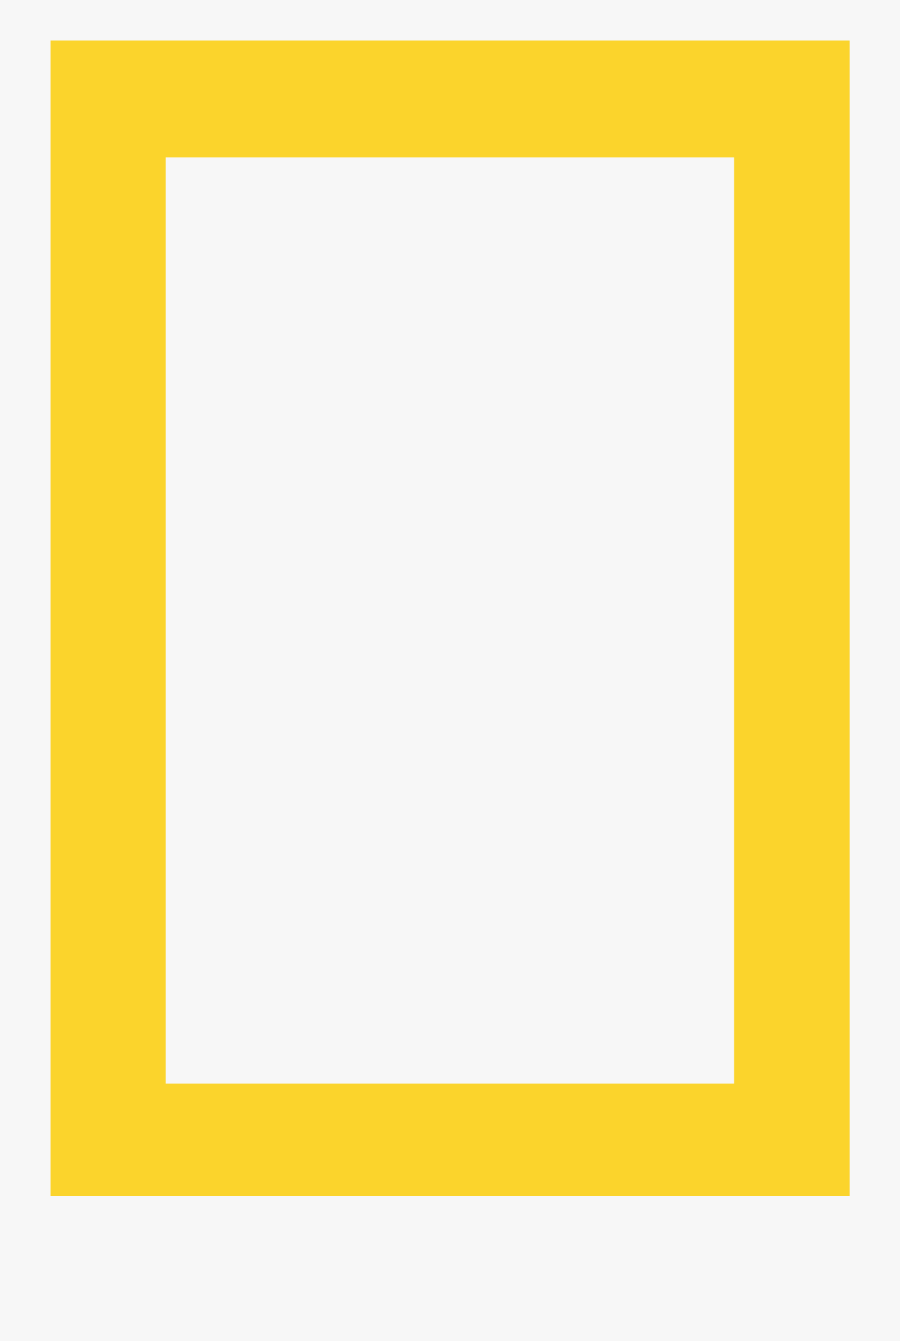 Yellow Square Png - National Geographic Yellow Box, Transparent Clipart